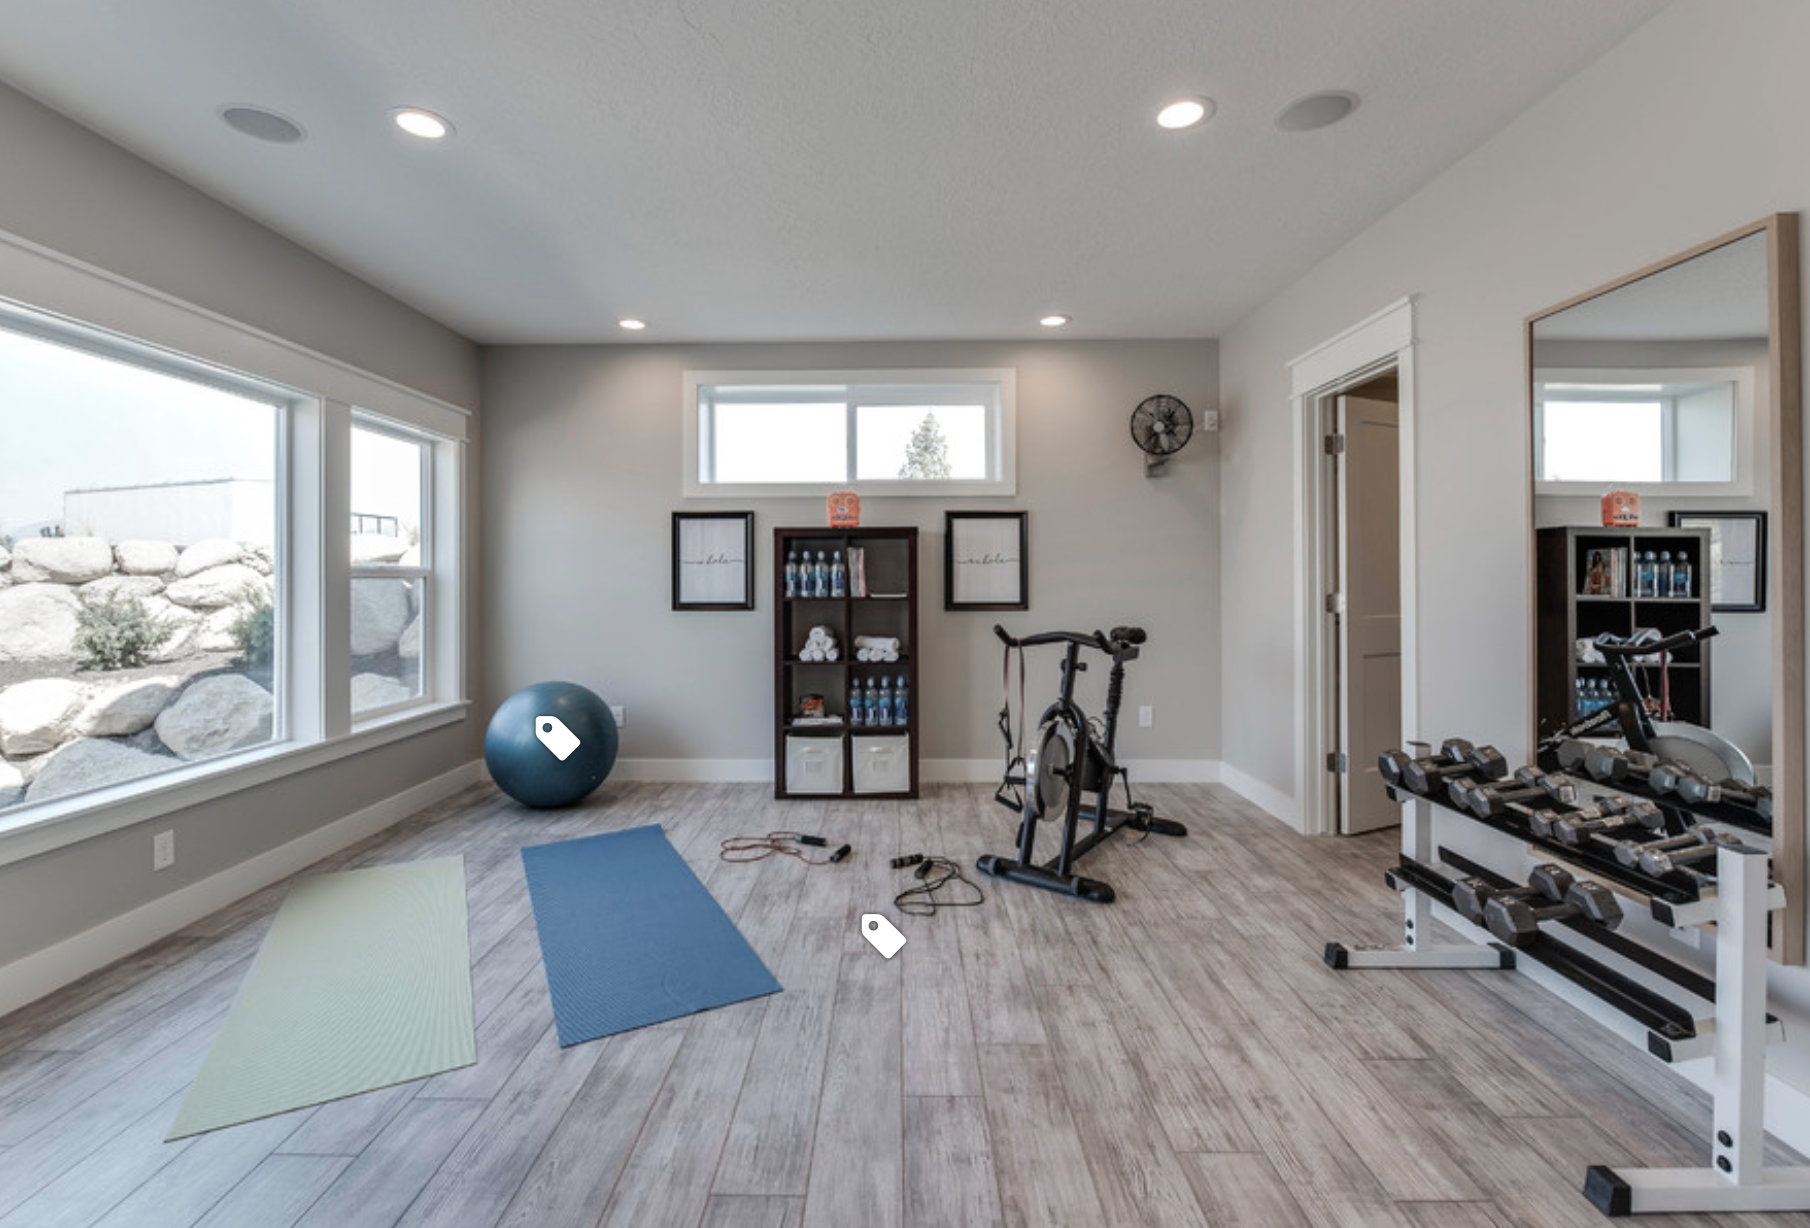 Pin By Emily Arce On Home Design Gym Room At Home Home Gym Flooring Workout Room Home